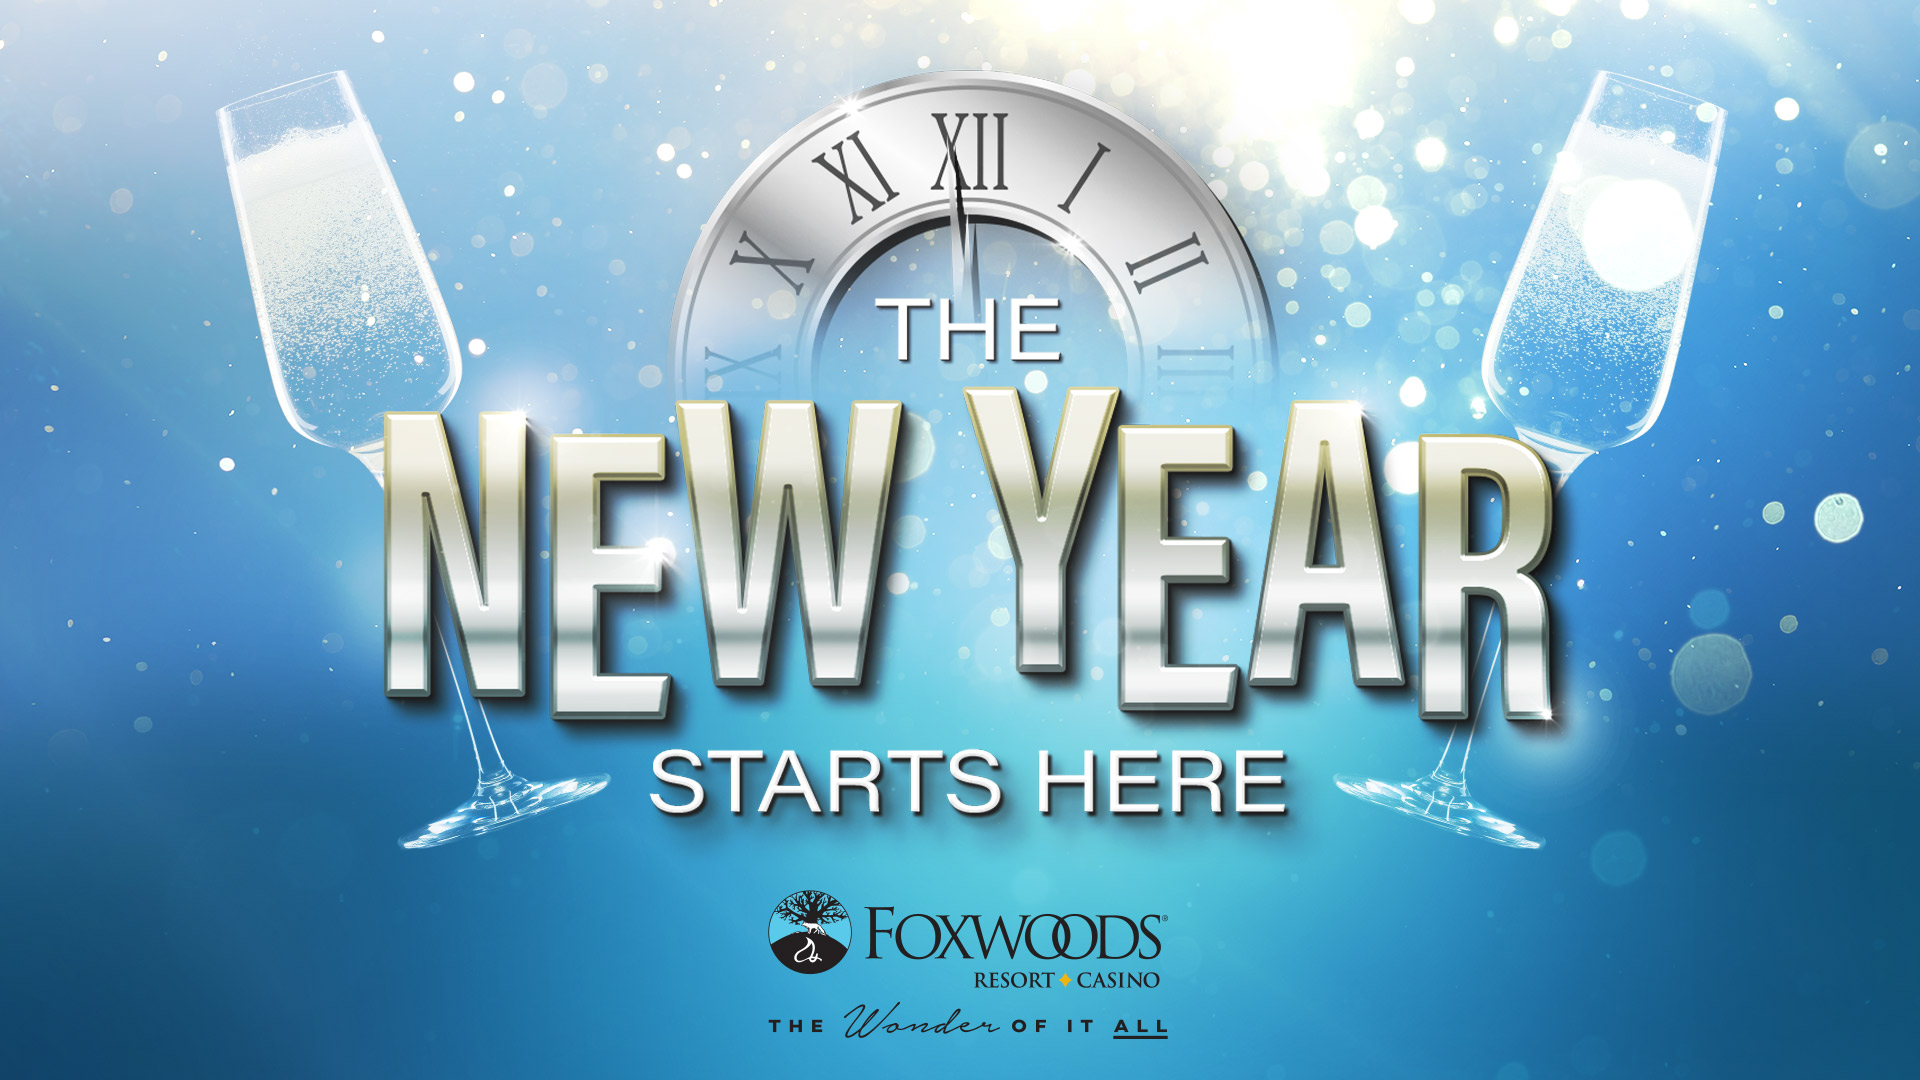 New Year's Eve at Foxwoods Resort Casino